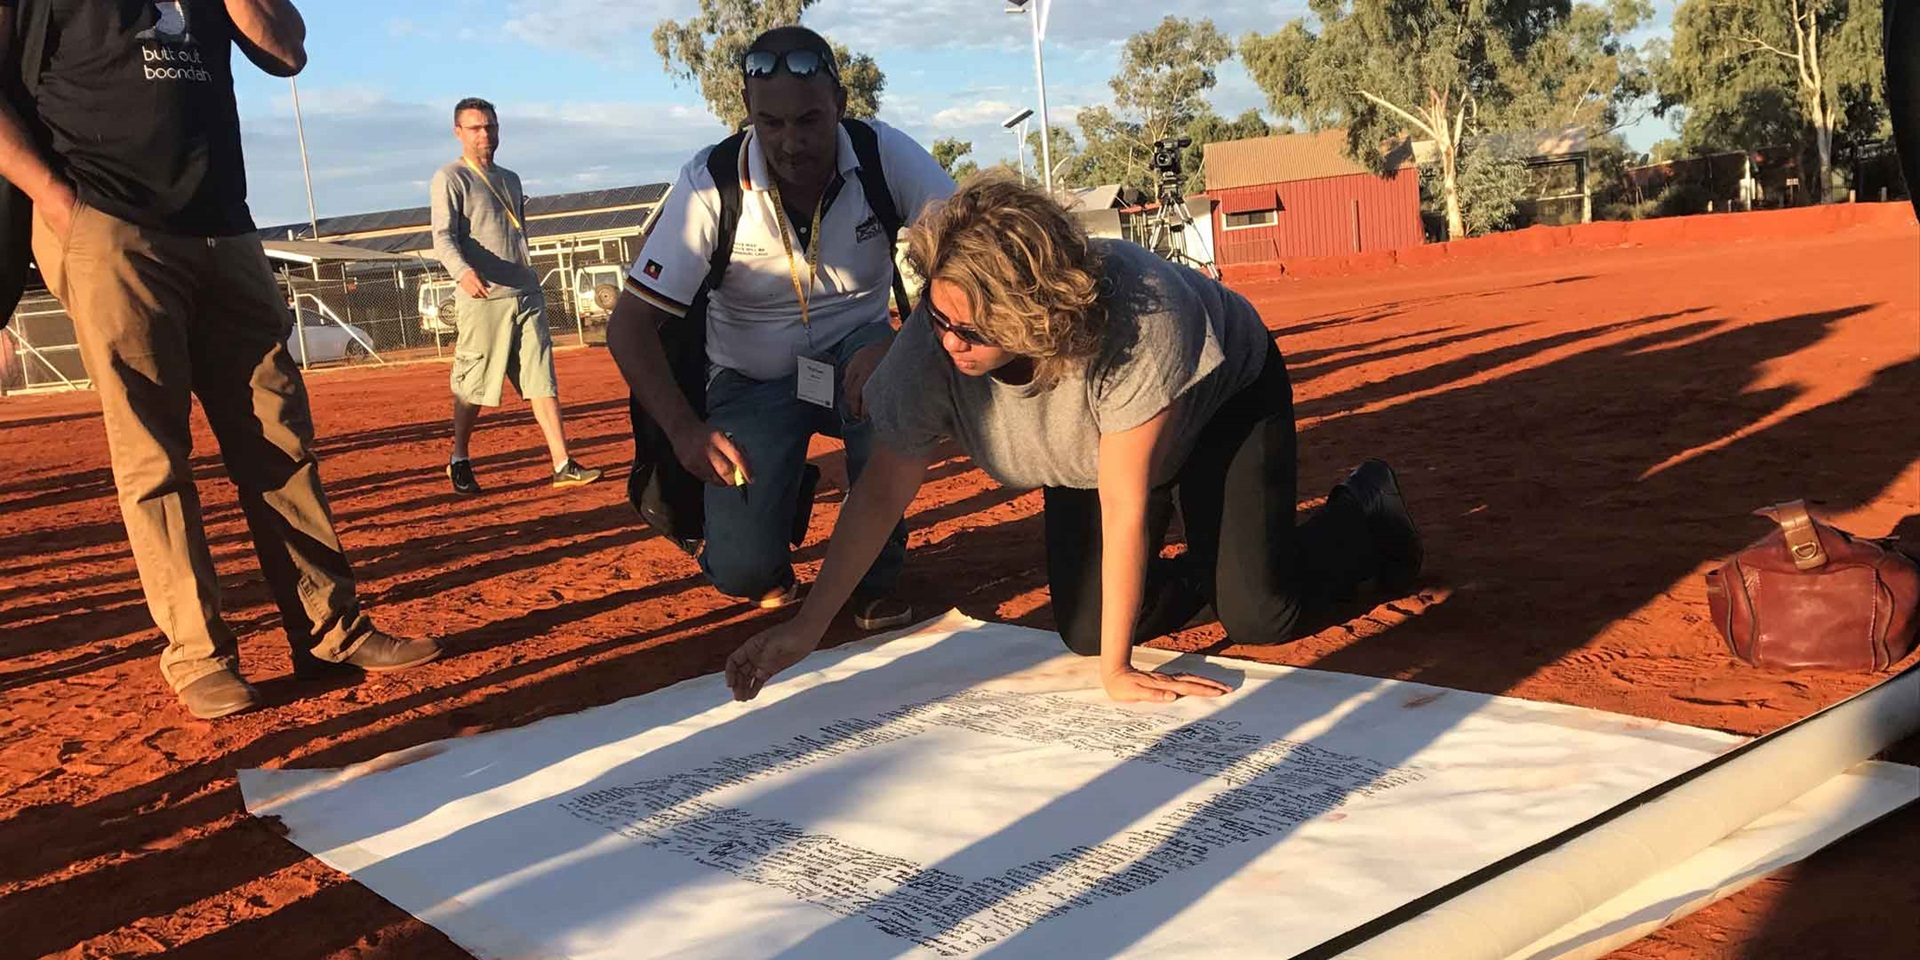 Denise Bowden, CEO of Yothu Yindi, signing the Uluru Statement from the Heart, in Central Australia, 29 May 2017, Australian Human Rights Commission.